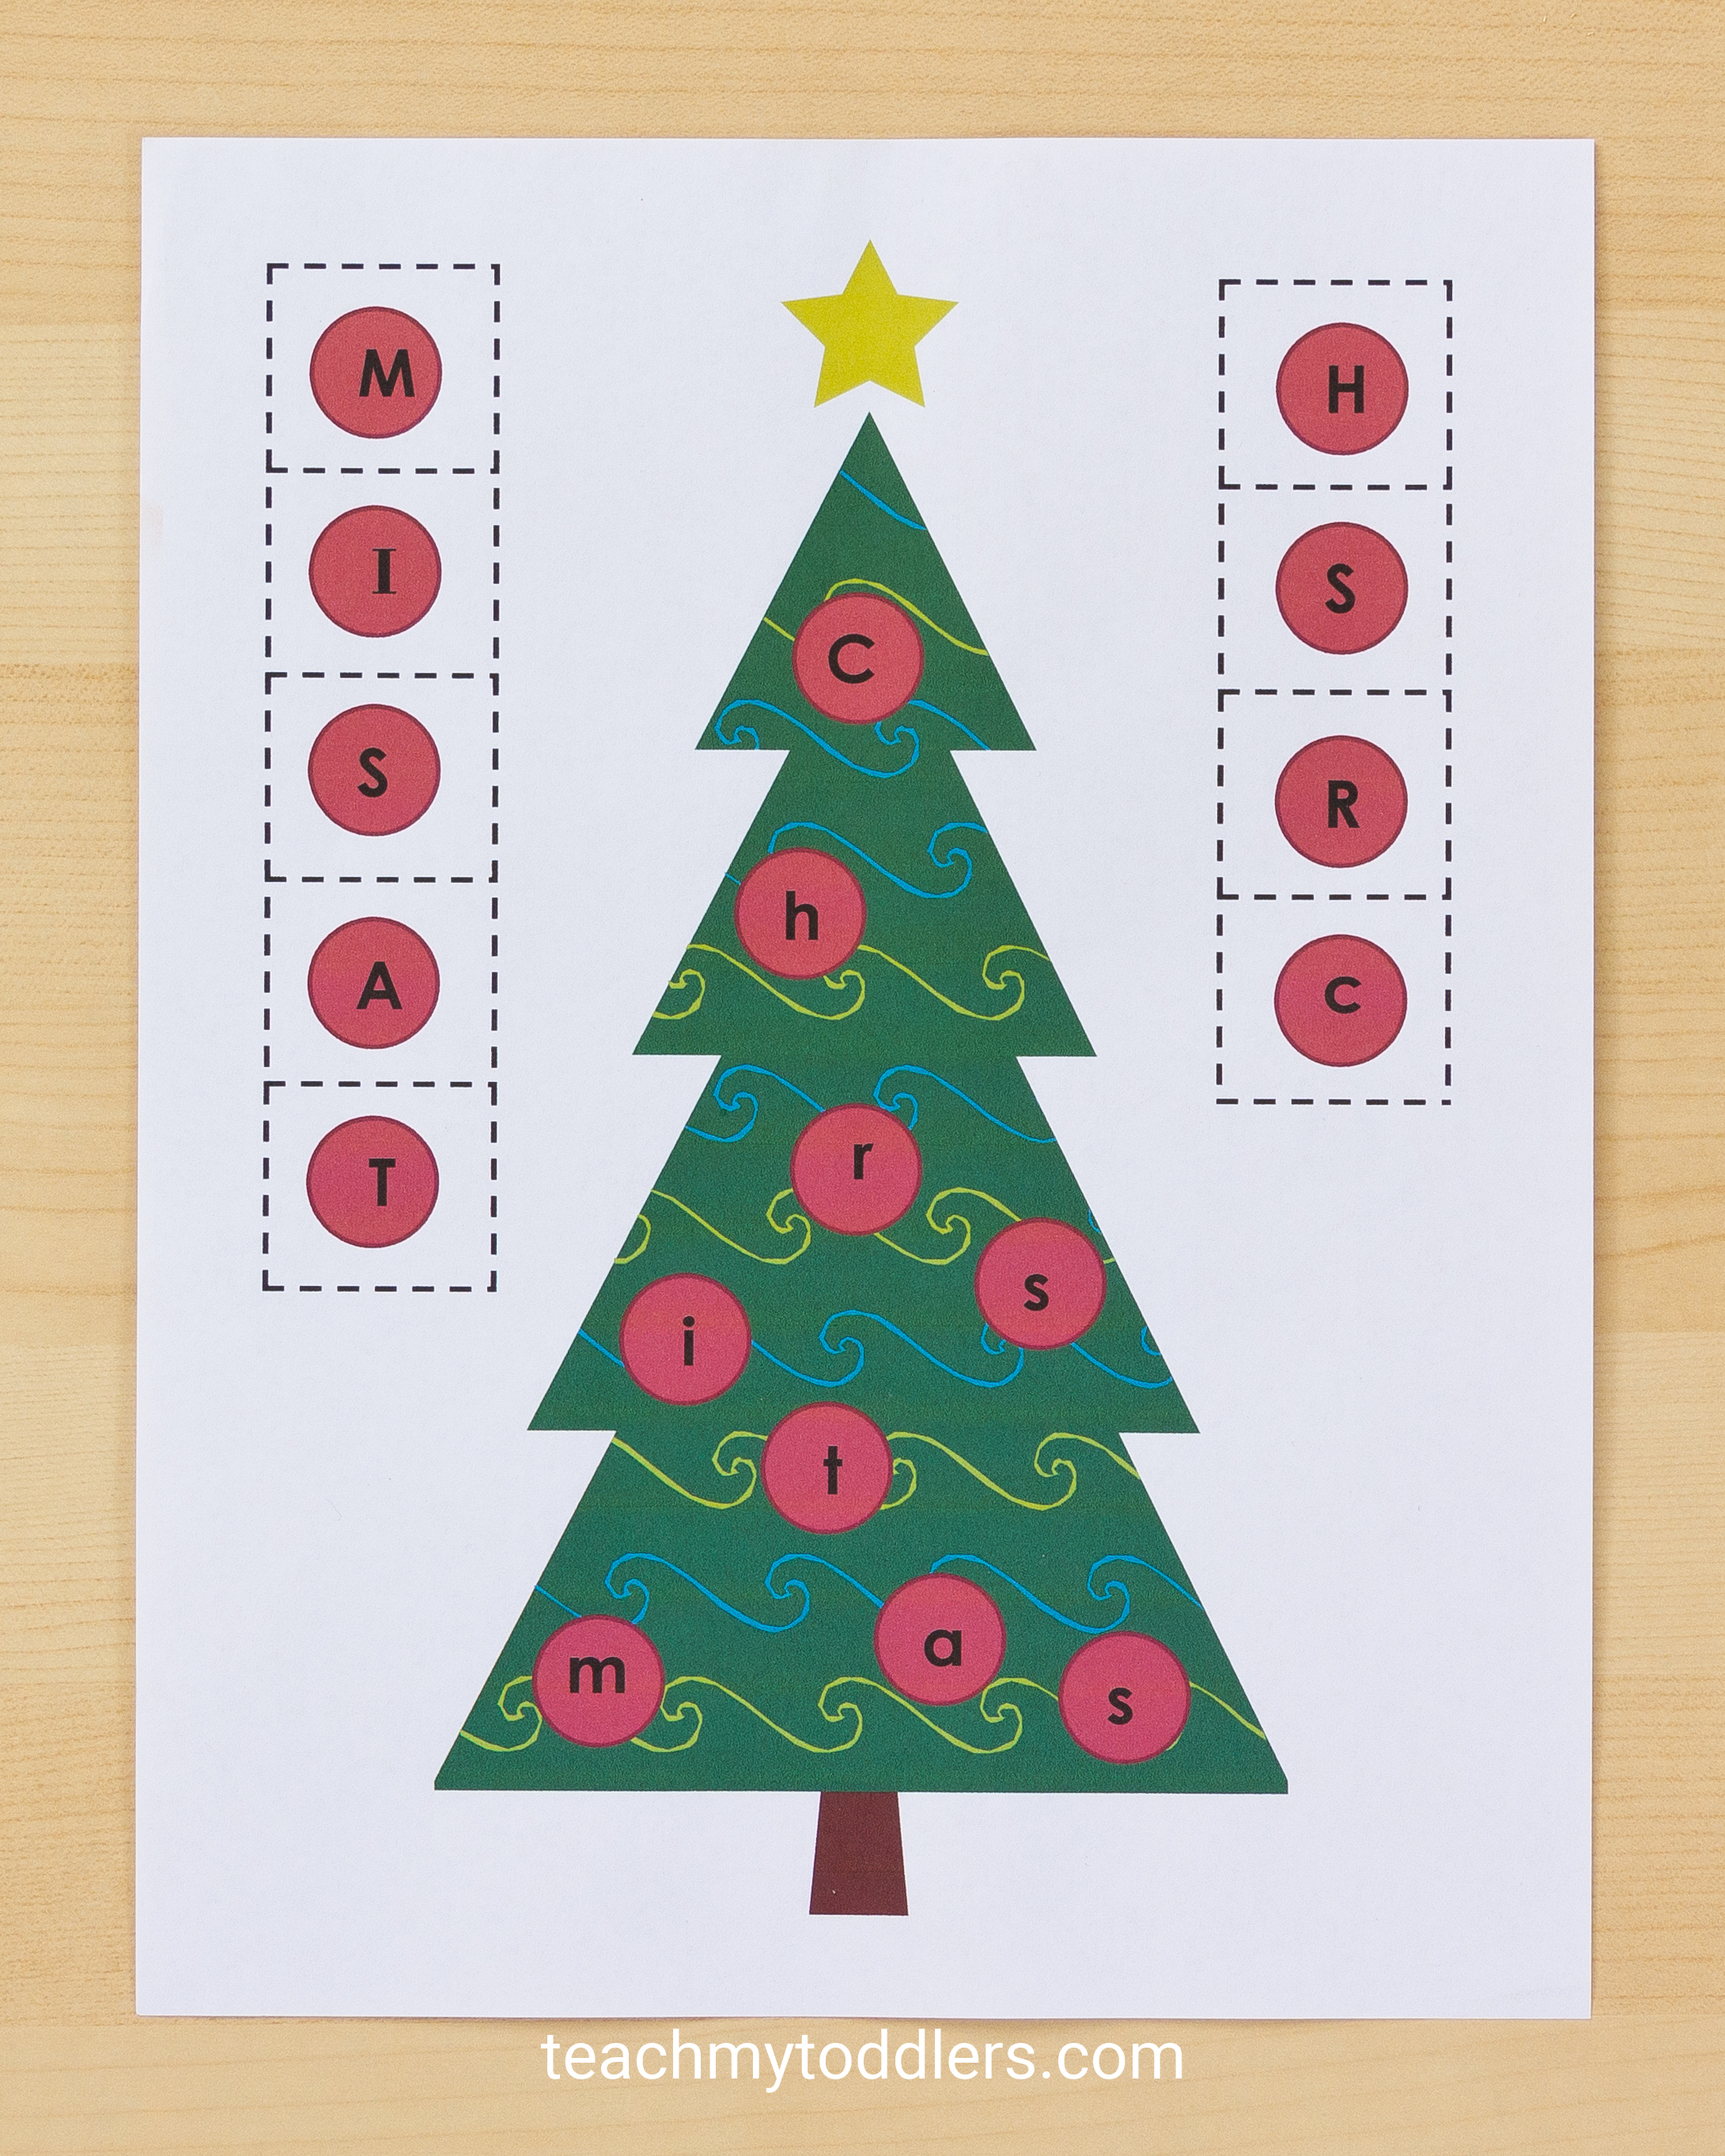 Teach your toddlers letters and colors with these unique christmas tree activities